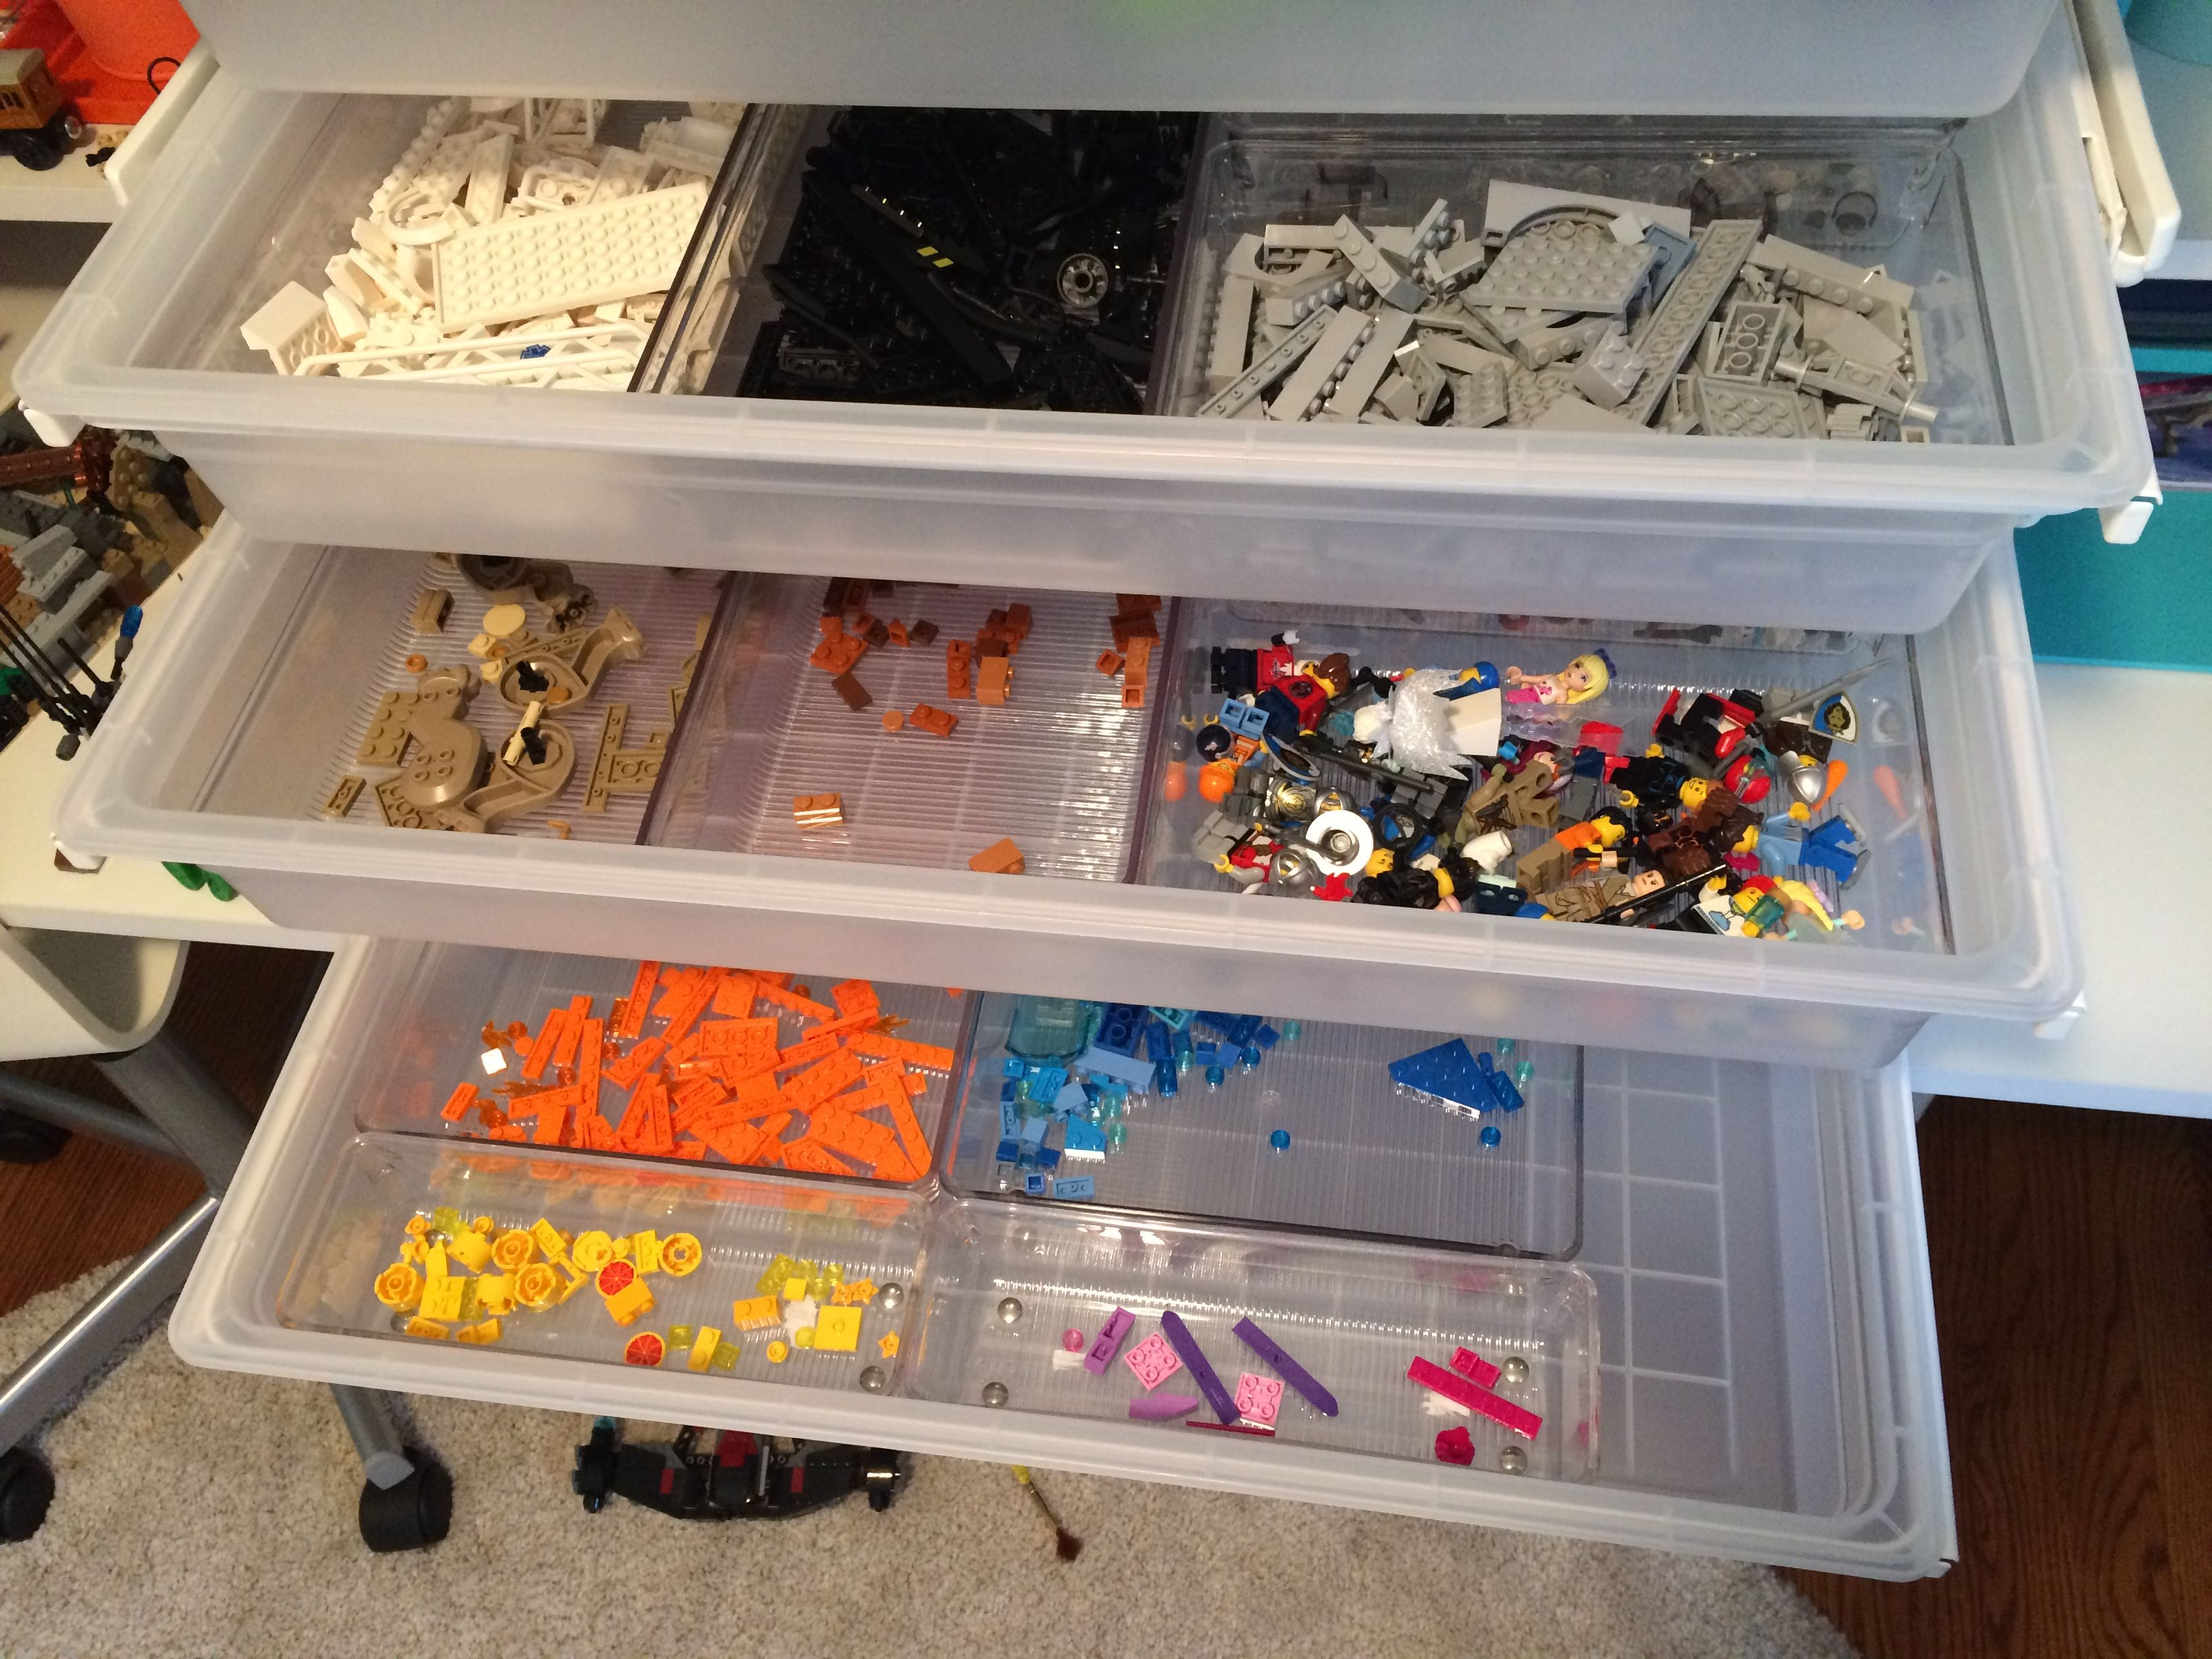 Container store Elfa drawers plus Linus shallow drawer organizers for Lego  storage